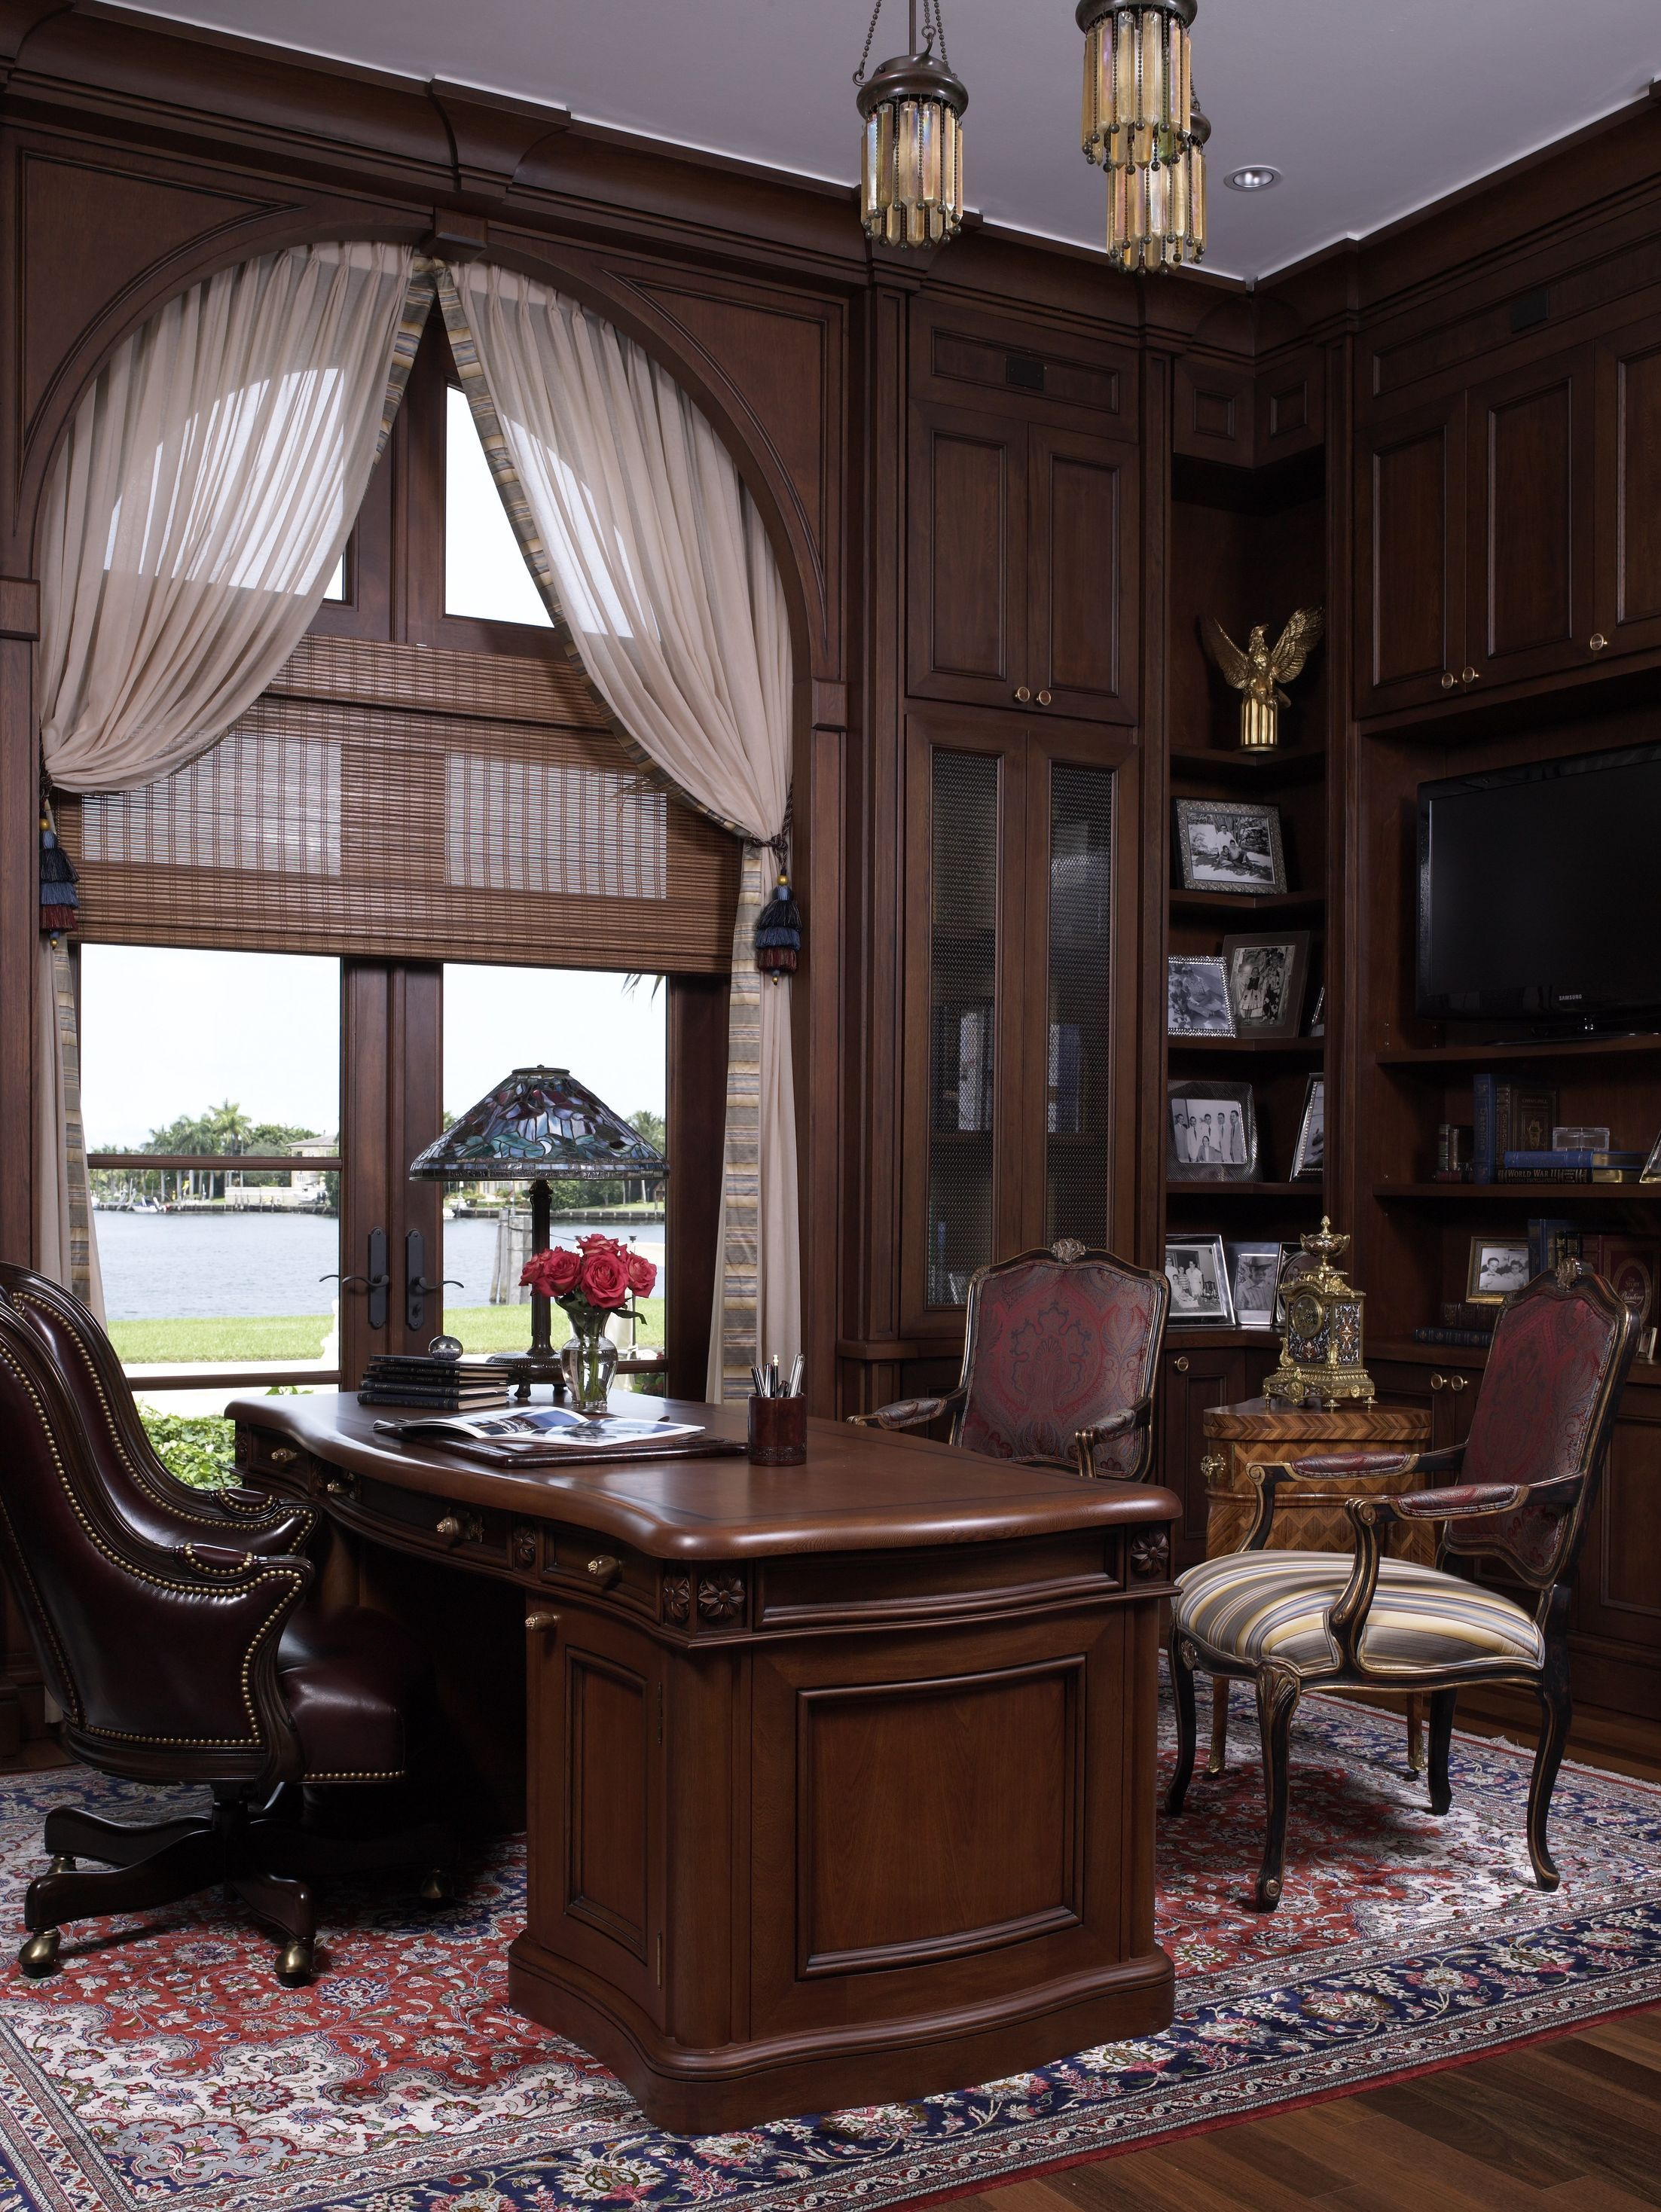 Diaz Home Office   Traditional   Home Office   Images By B. Pila Design  Studio | Wayfair